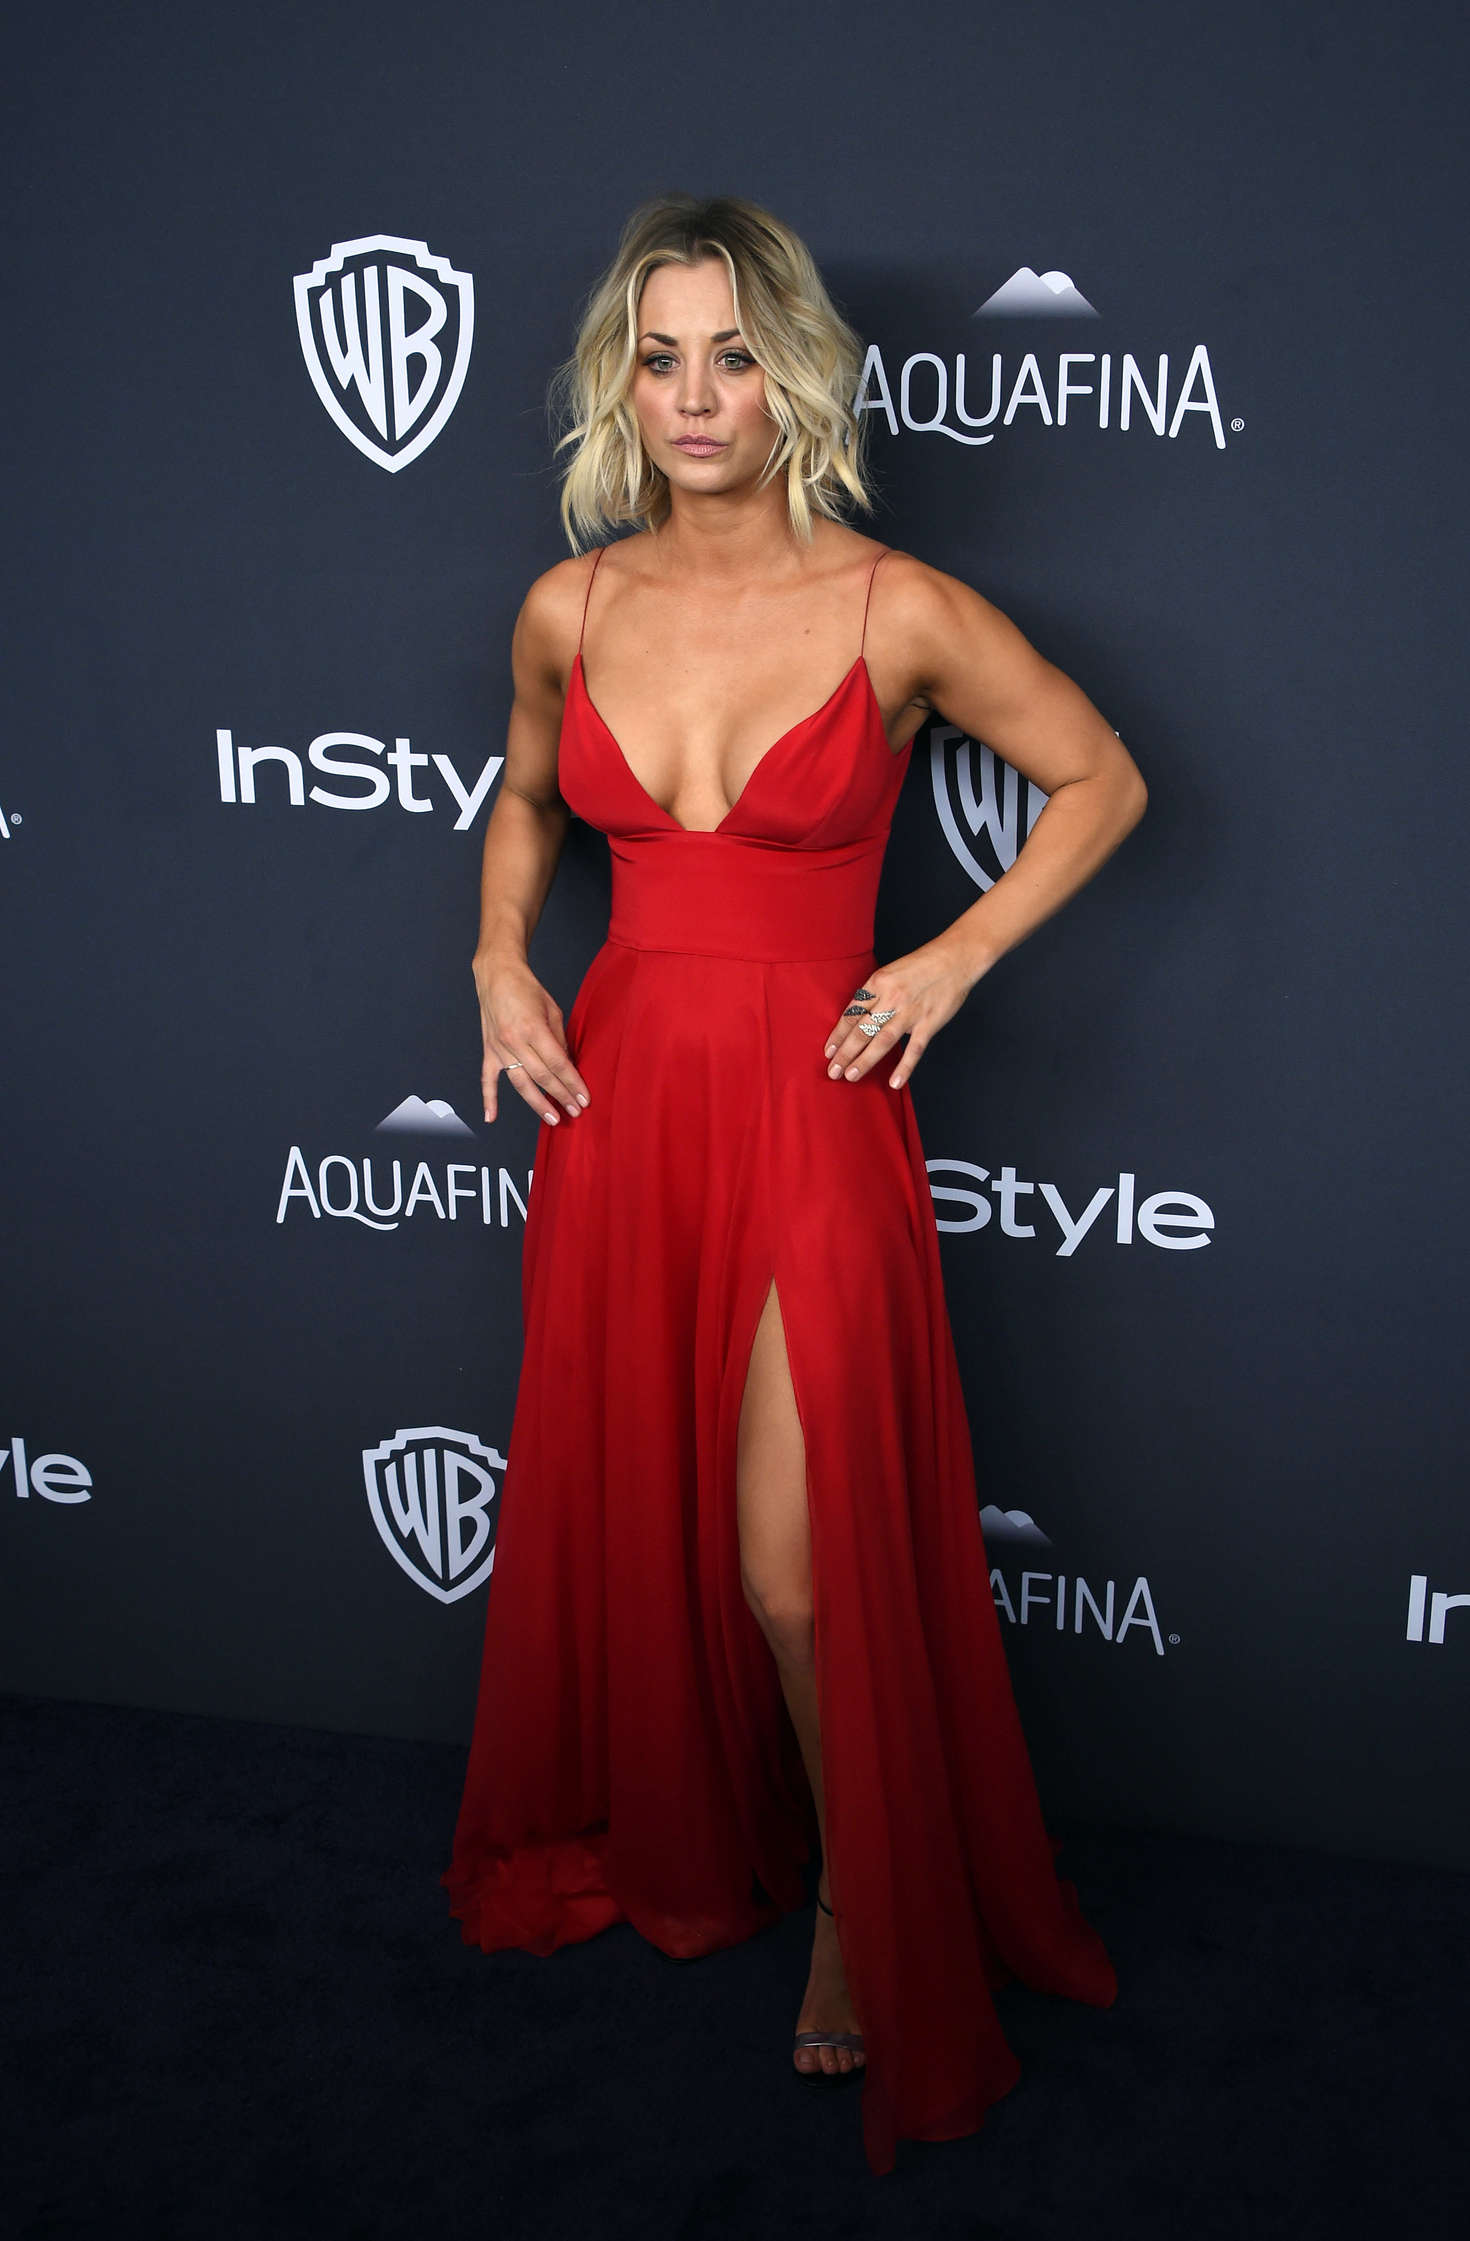 Kaley Cuoco Instyle And Warner Bros 2016 Golden Globe